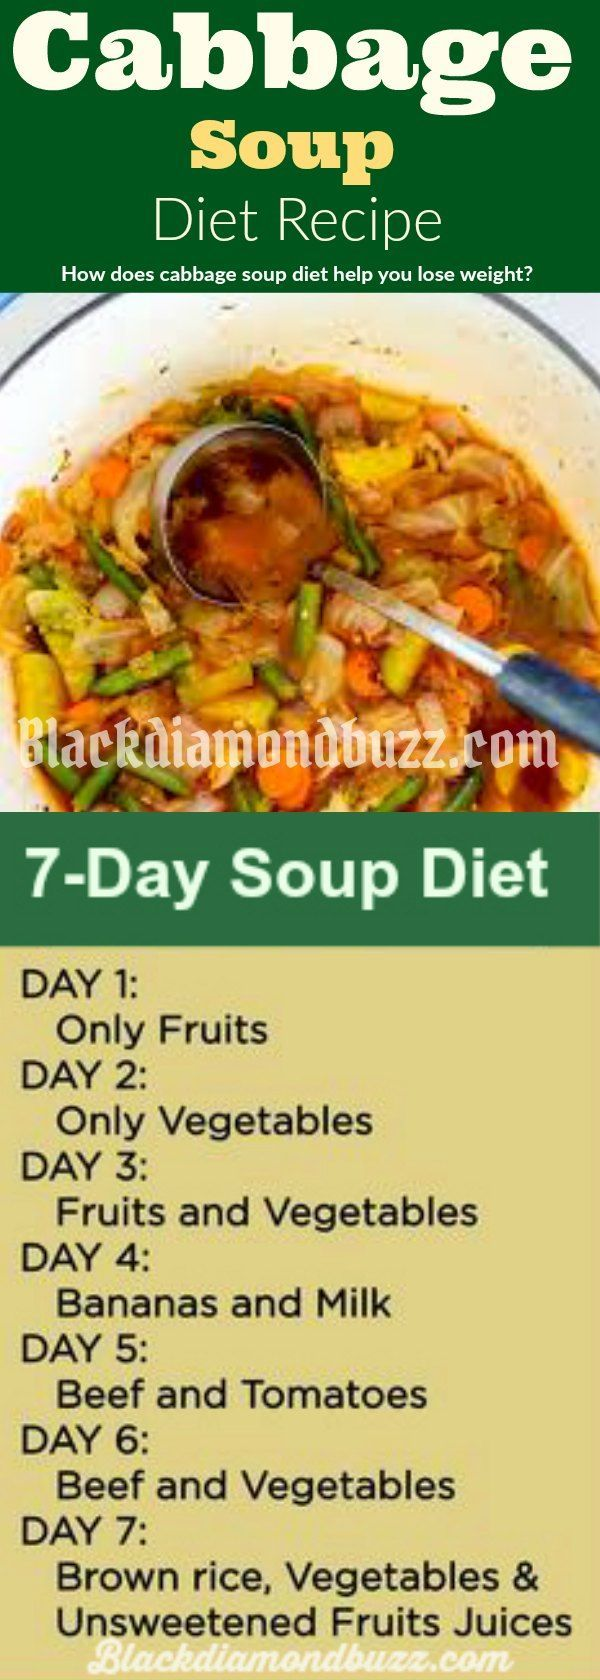 Best cabbage soup diet recipe for weight loss lose 10 lbs in 7 best cabbage soup diet recipe for weight loss lose 10 lbs in 7 days forumfinder Image collections